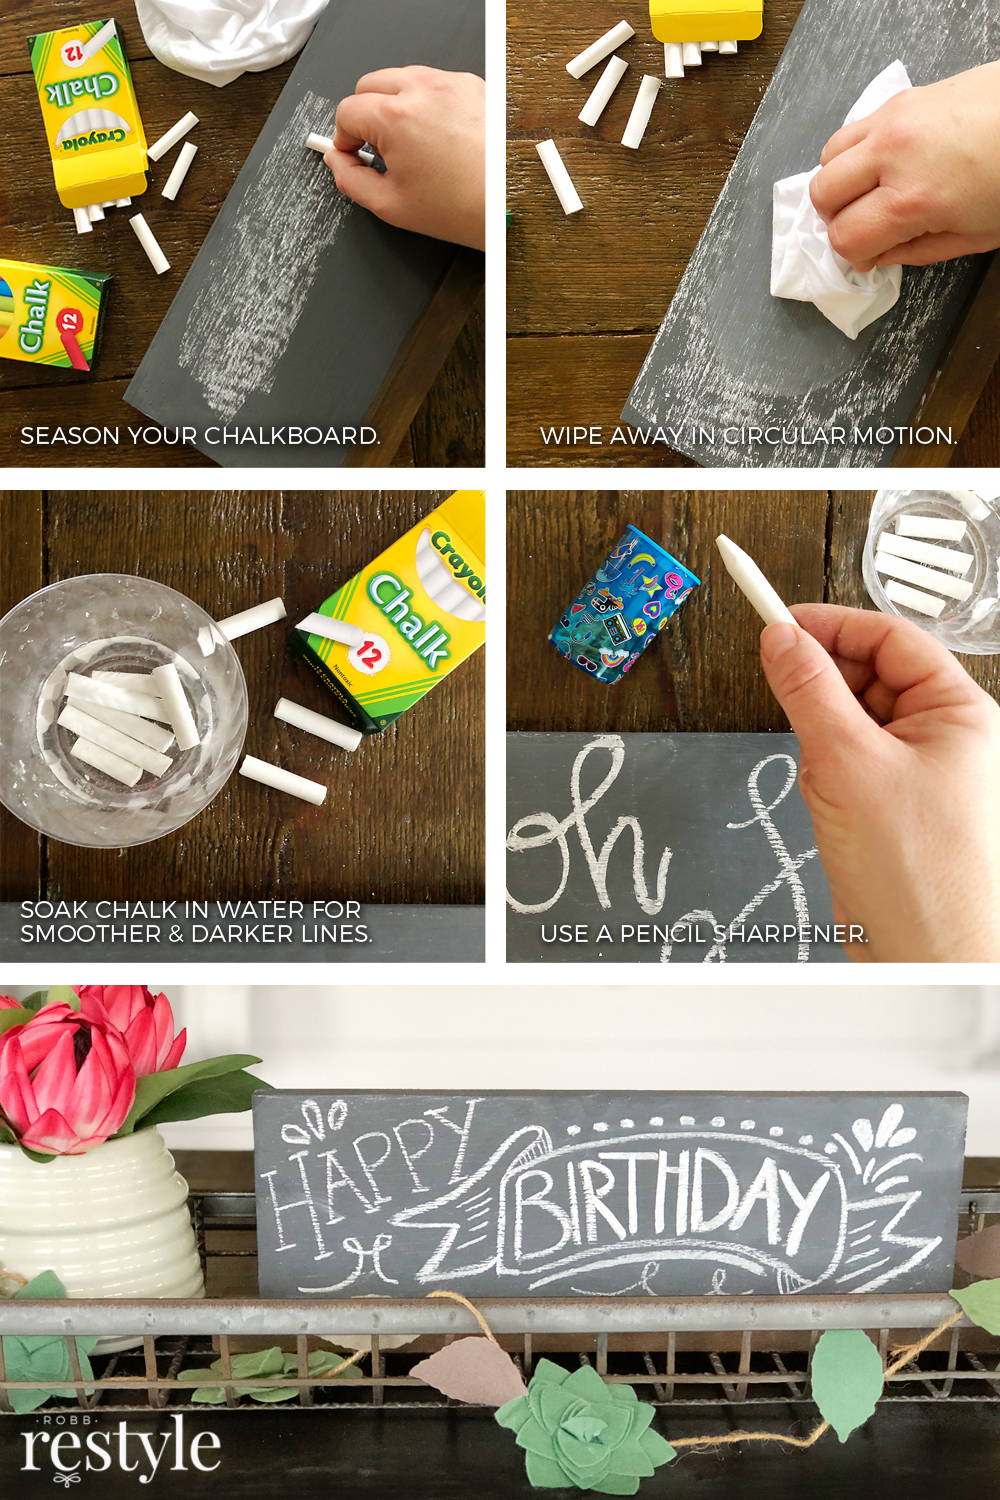 How to season a chalkboard.